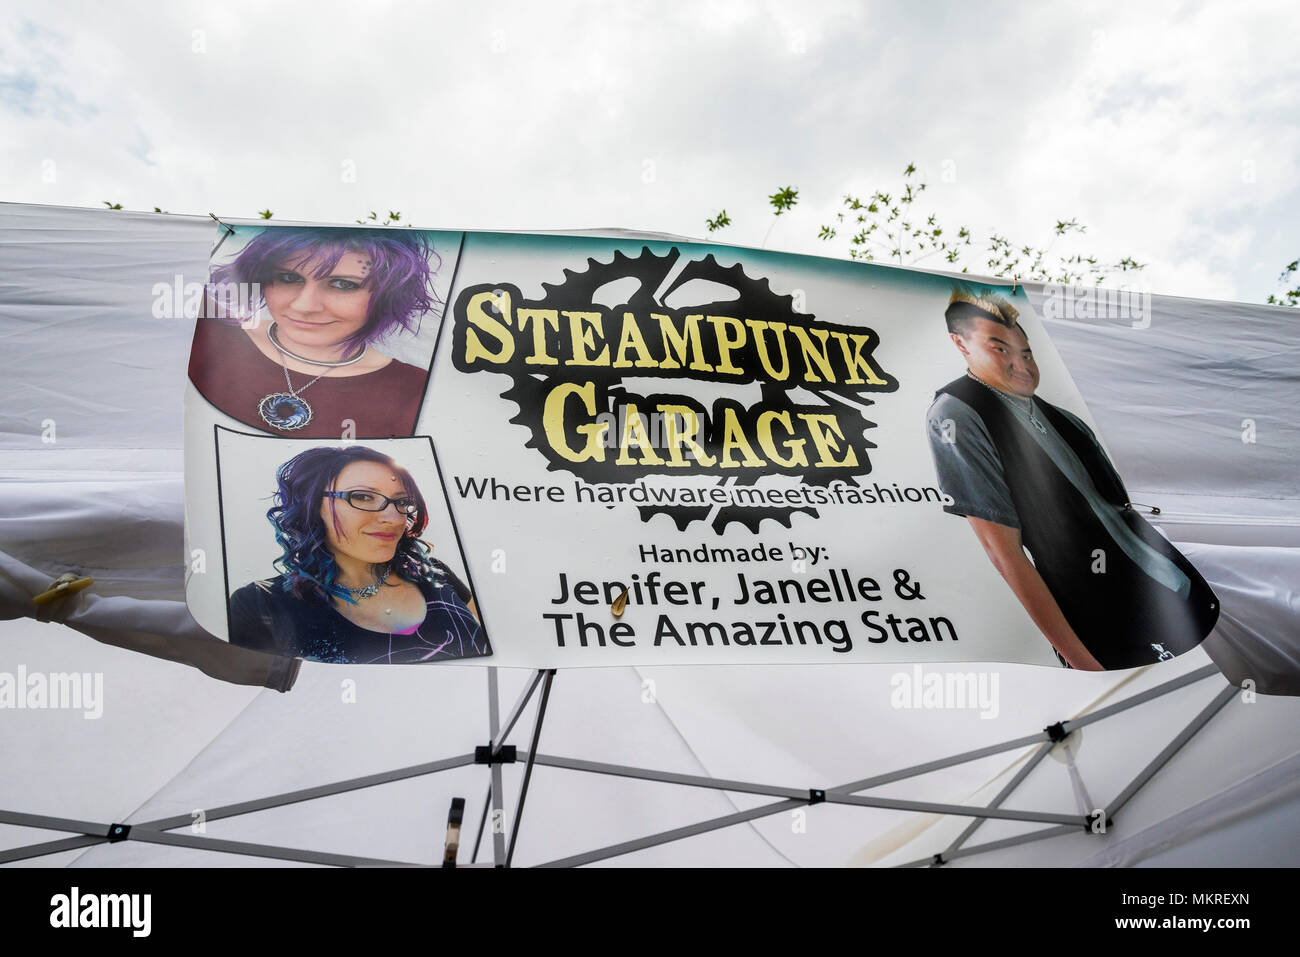 Spring Festival in Gainesville, Florida, features a variety of expression and experiences. Booth selling steampunk items and fashions. - Stock Image